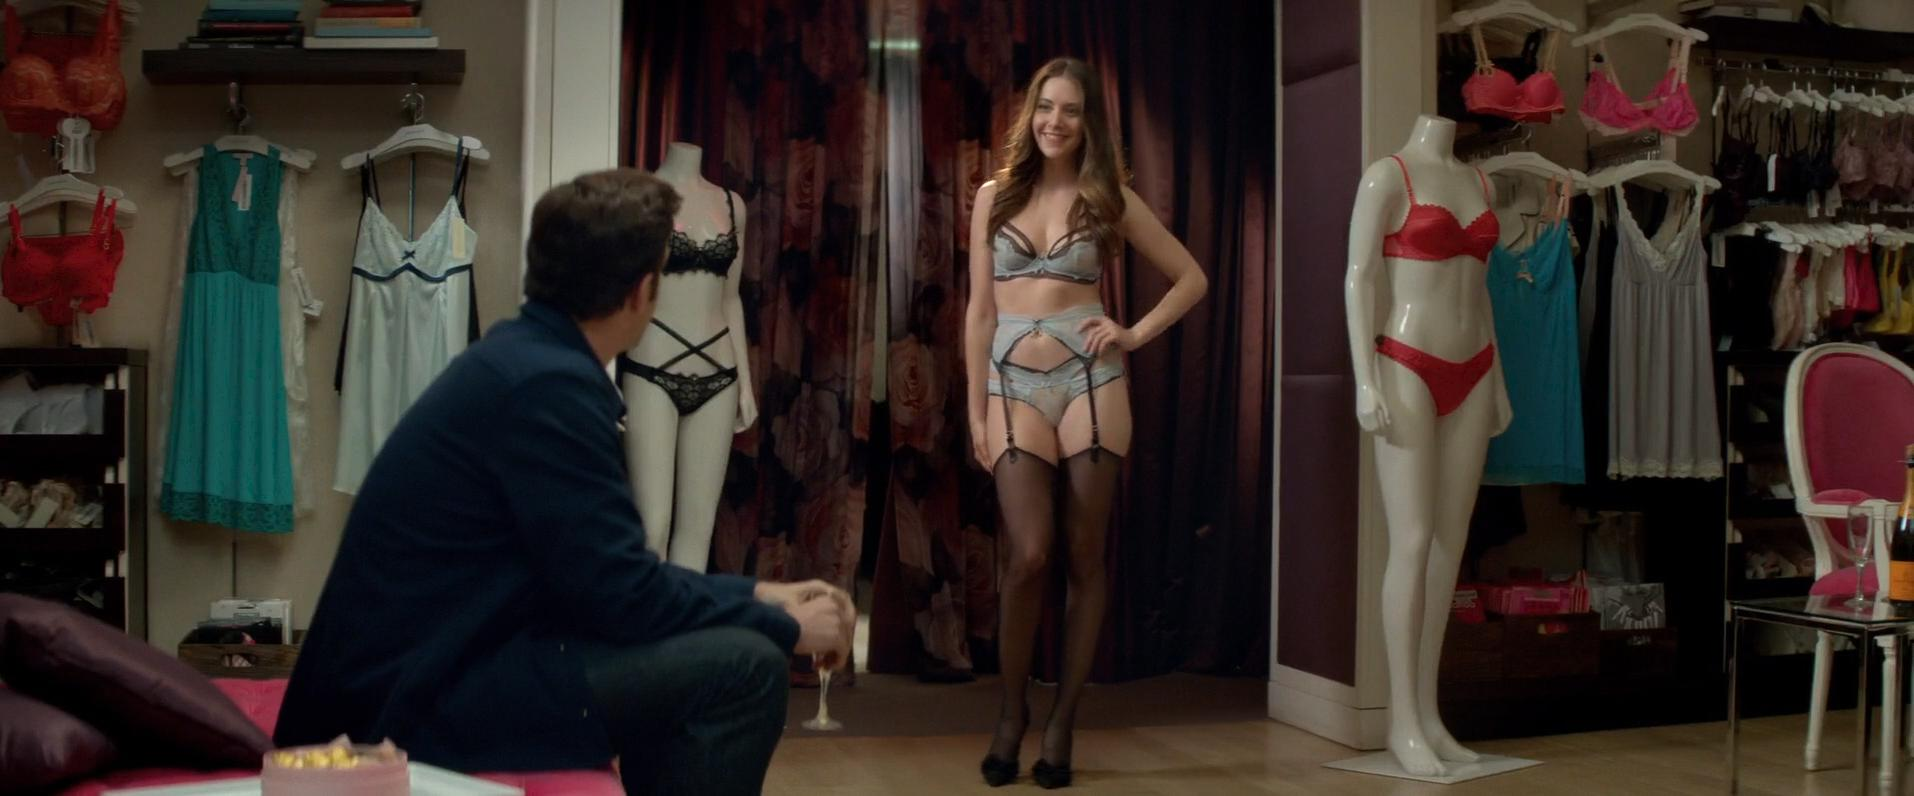 Alison Brie sexy, Amanda Peet sexy, Margaret Odette nude, Margarita Levieva sexy - Sleeping with Other People (2015)